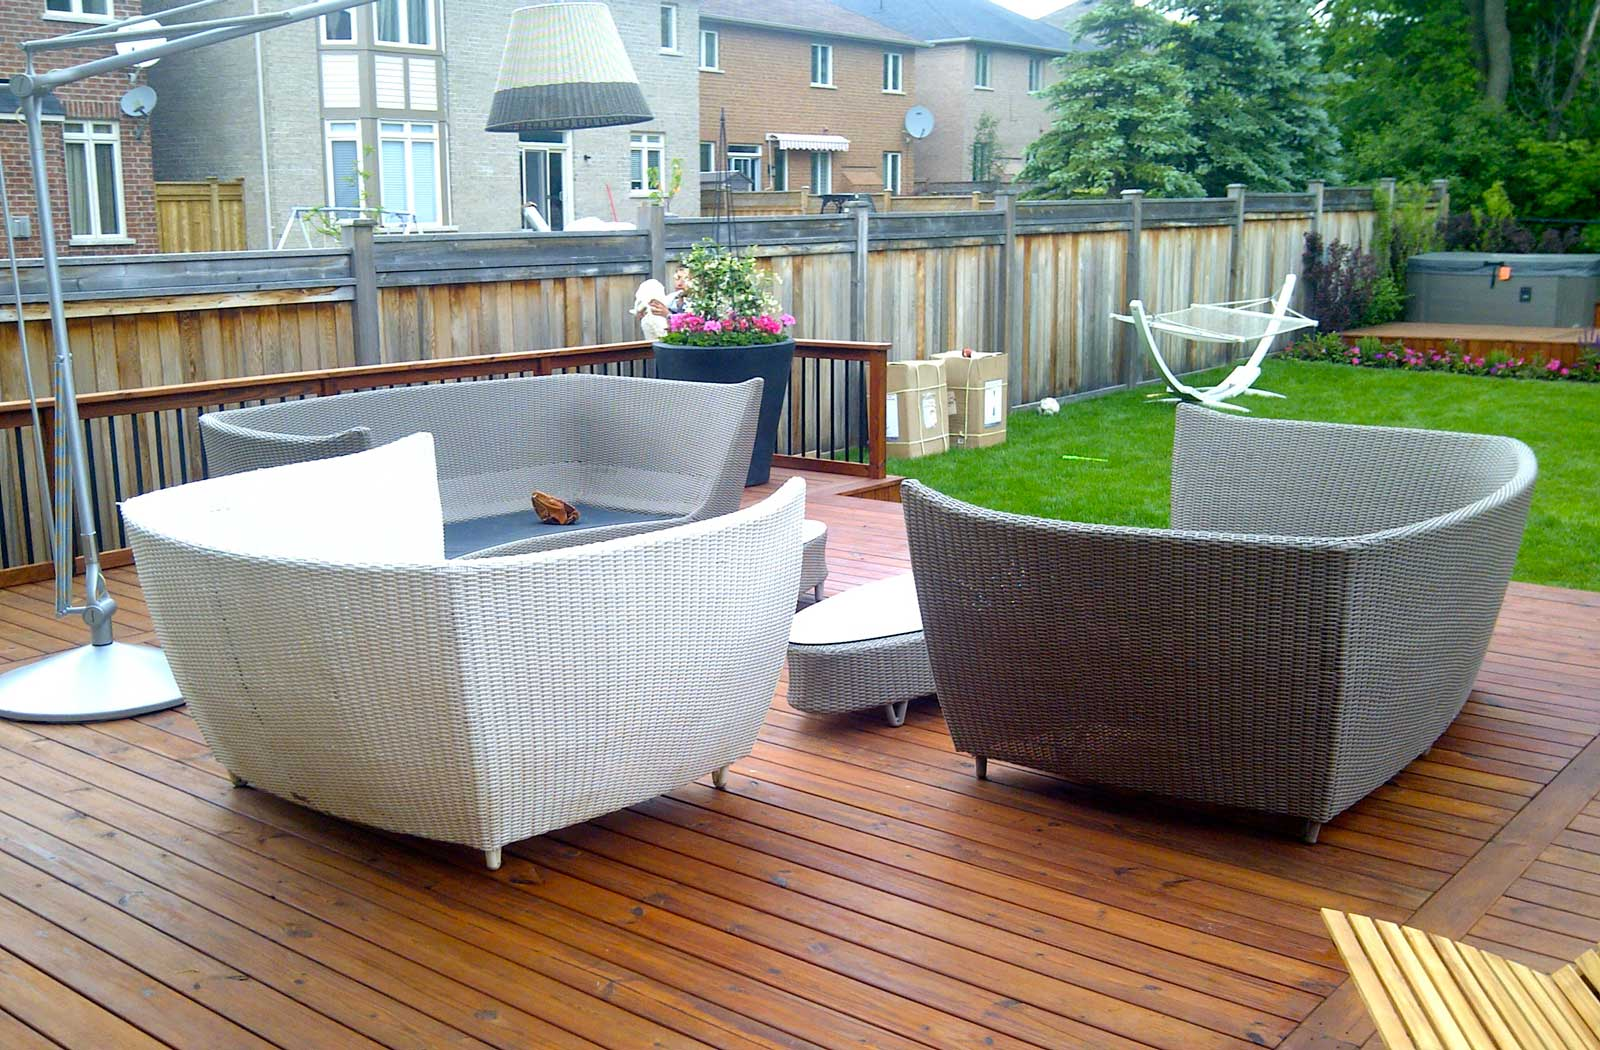 PVC deck, aluminum railings, landscaping, outdoor furniture, flower garden